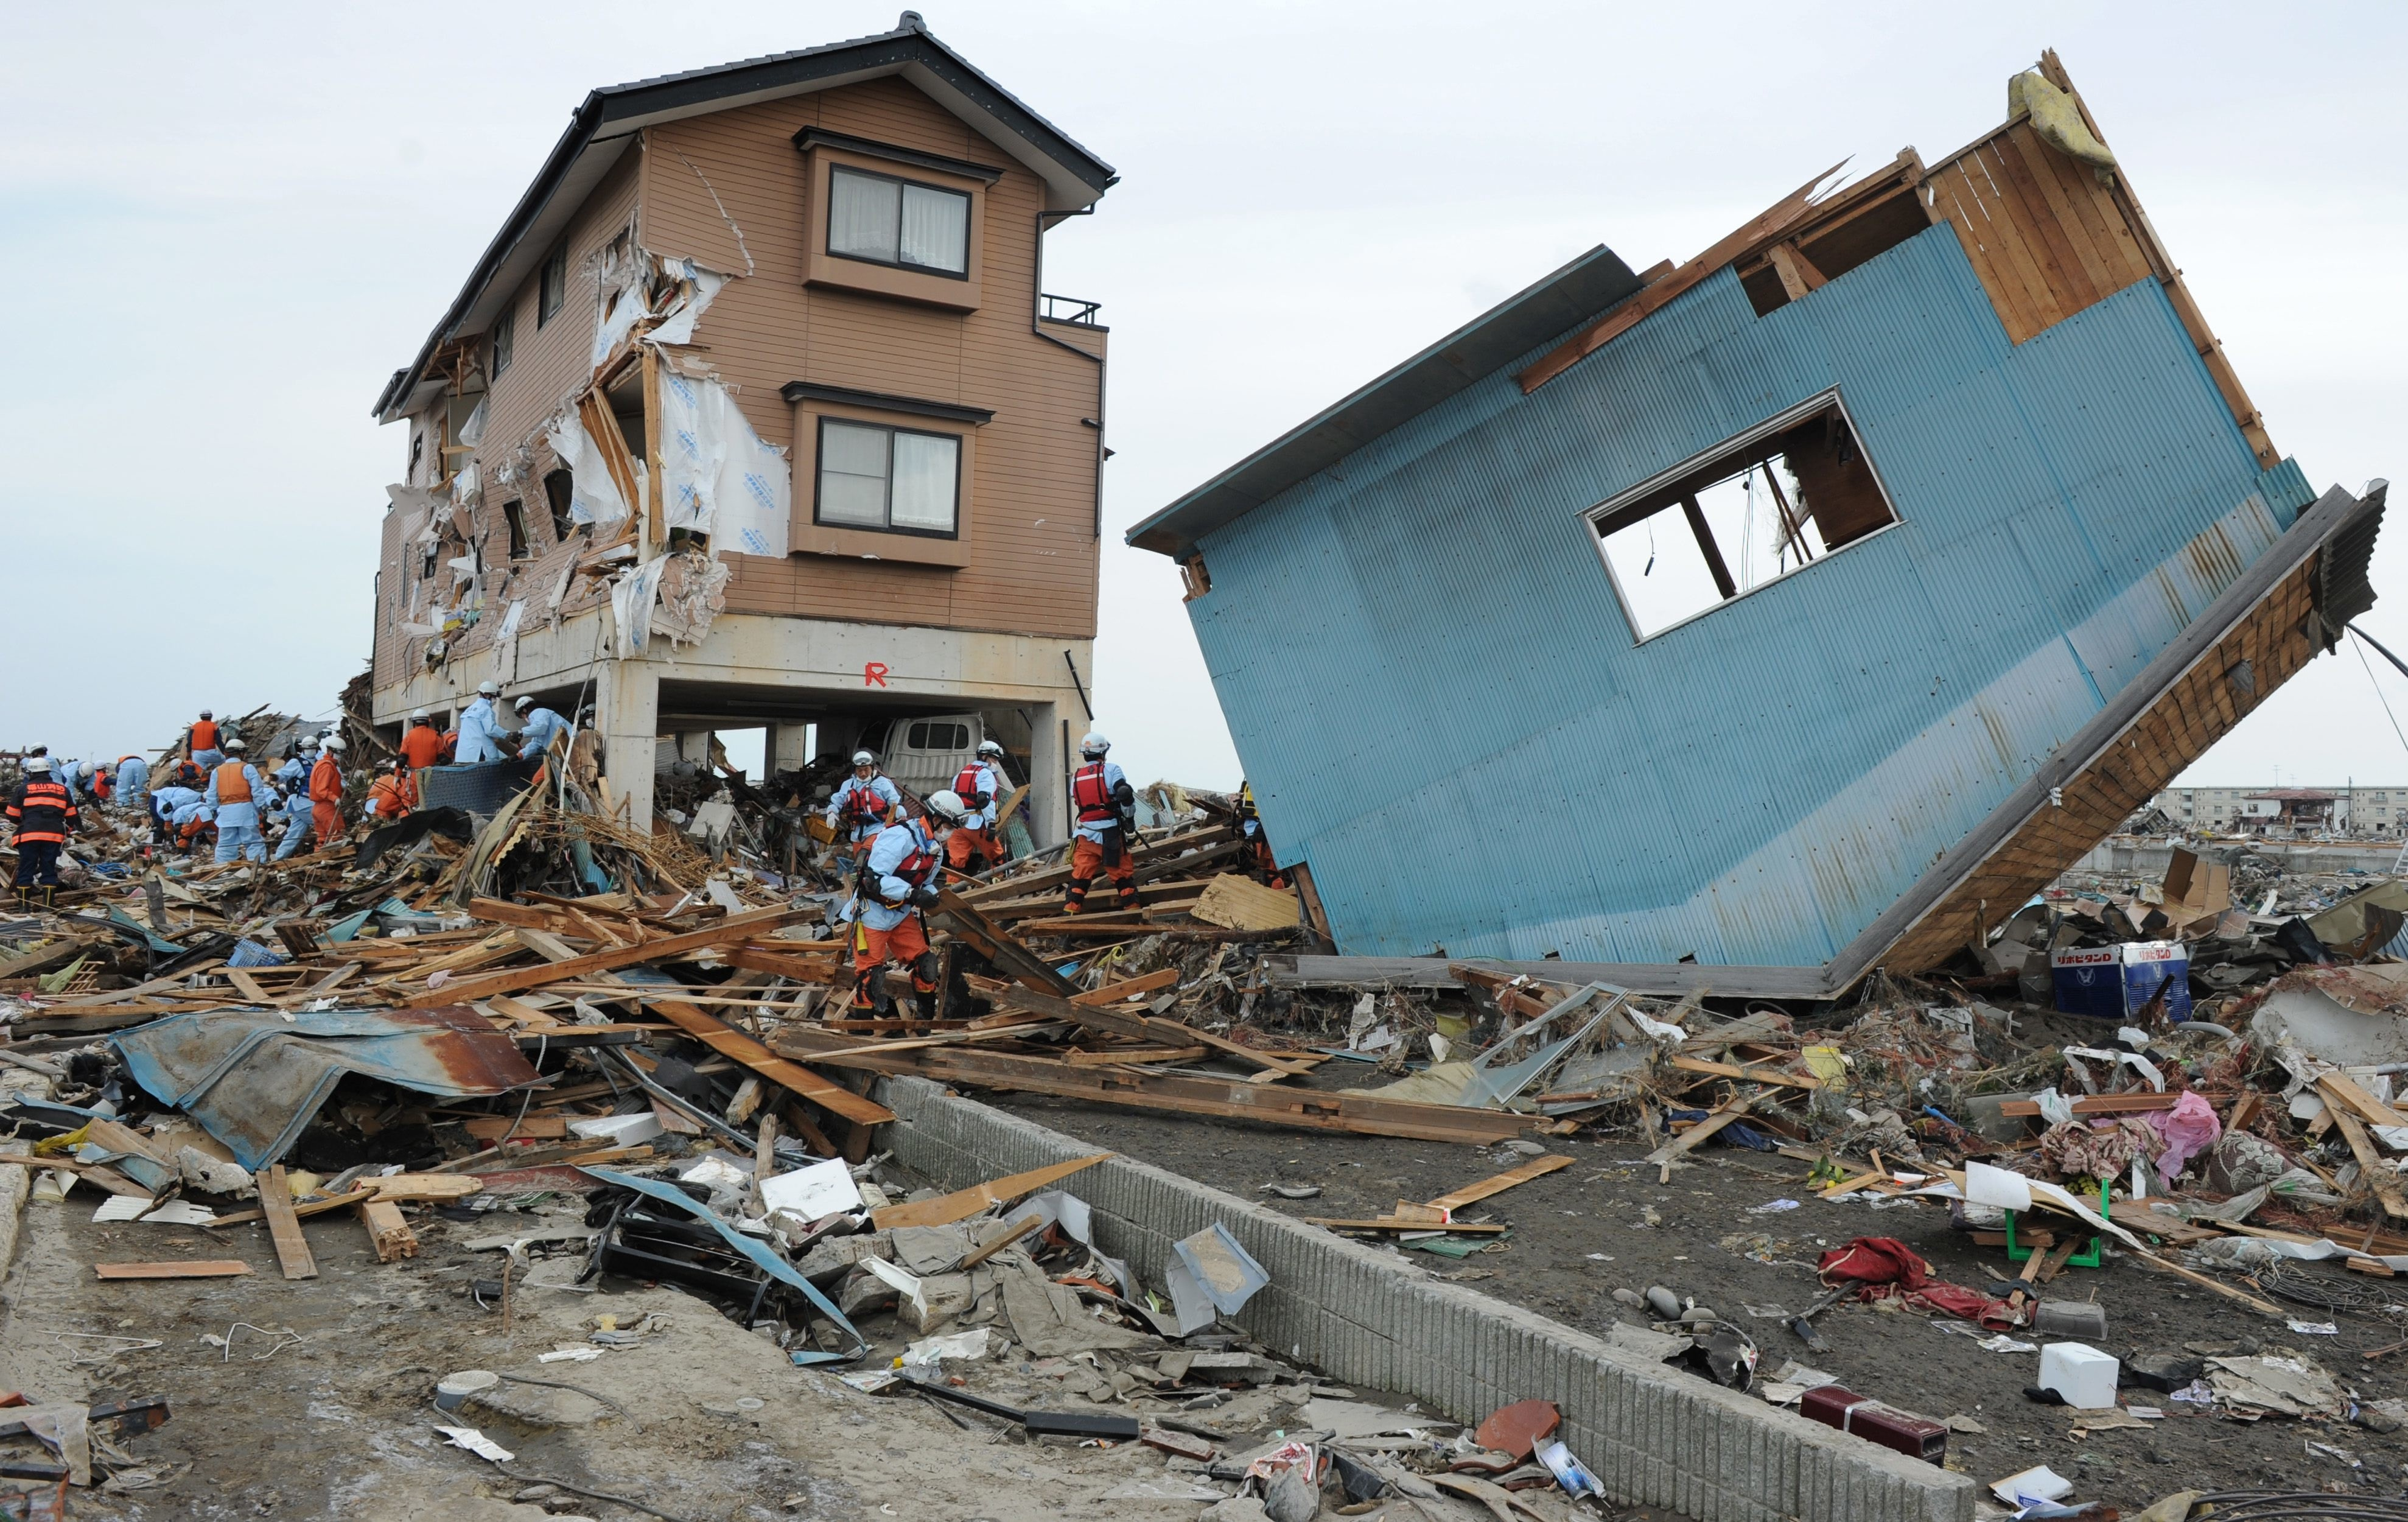 japans tsunami and earthquake economic effects The full extent of the economic impact of friday's earthquake and tsunami is becoming apparent , with hundreds of factories shut across japan, warnings of rolling blackouts and predictions from economists that the disaster would push the country into recession.